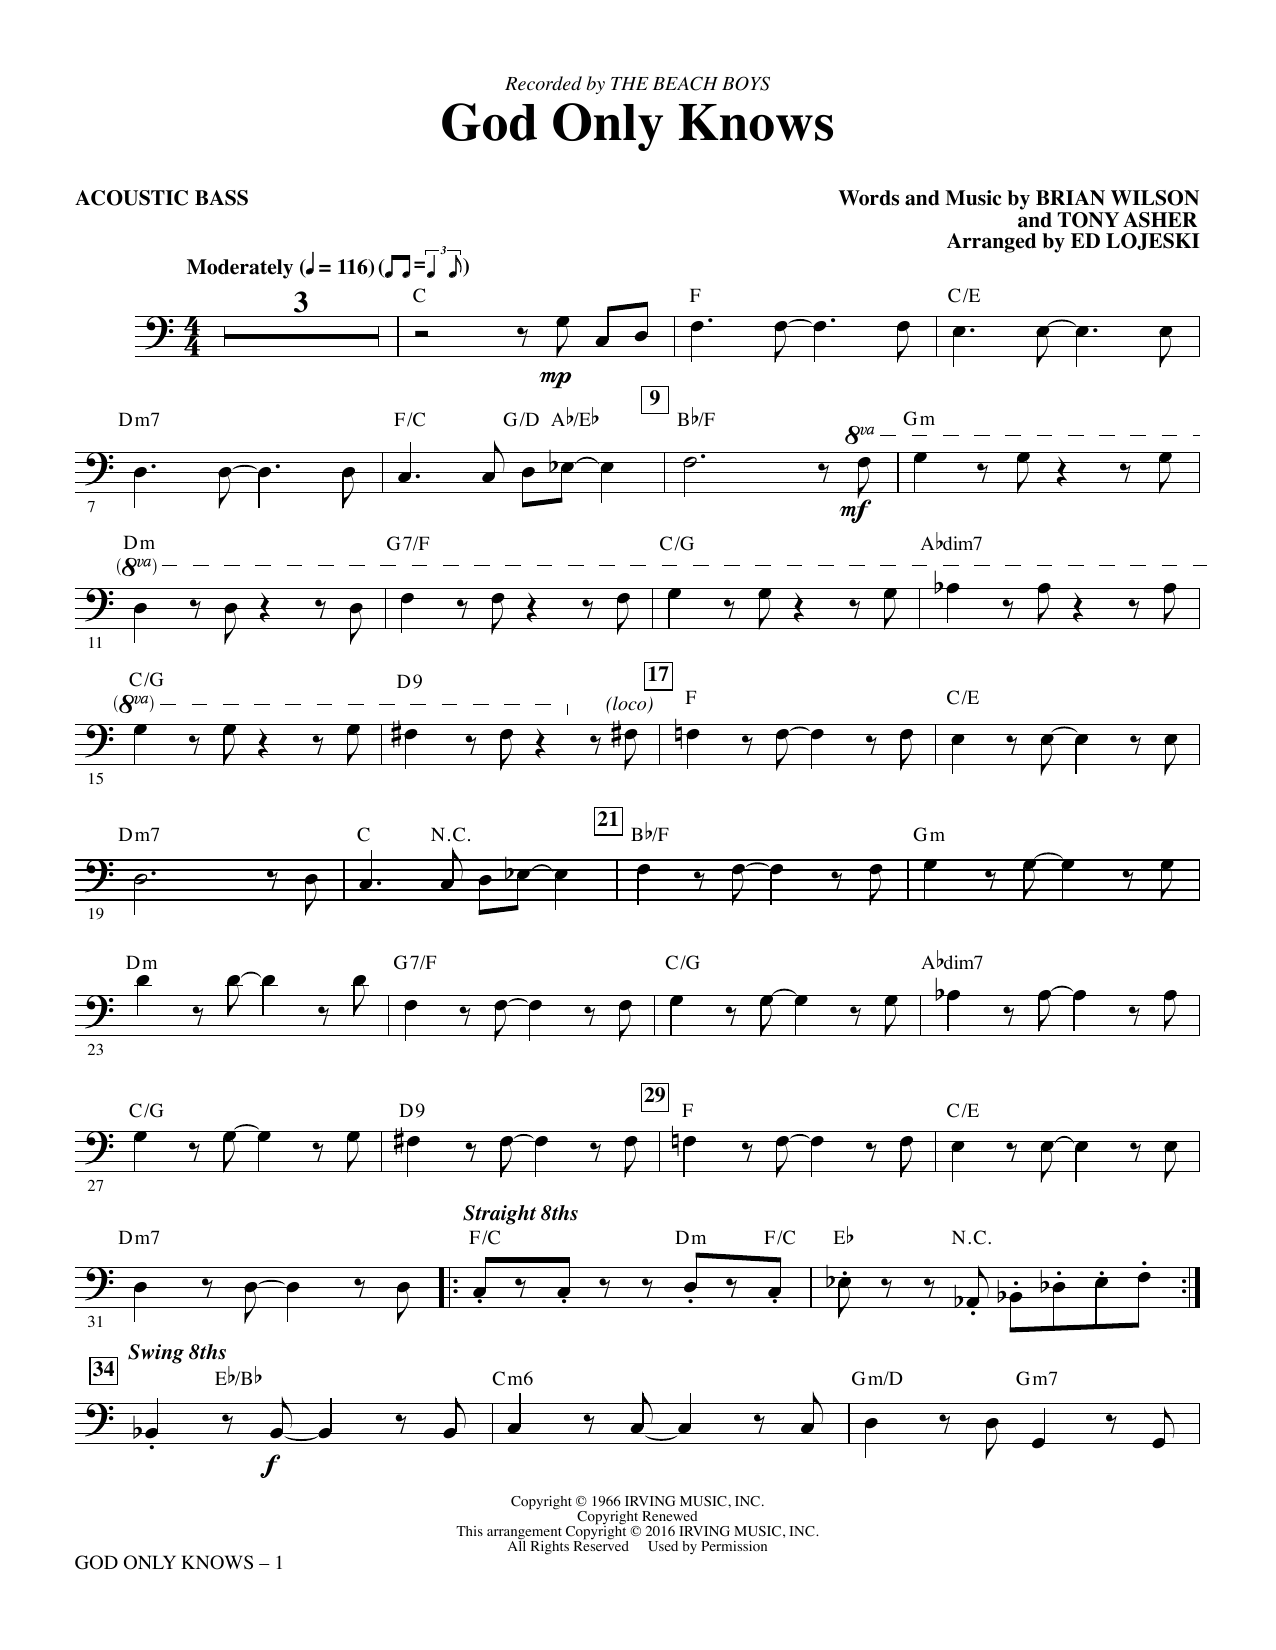 God Only Knows - Acoustic Bass sheet music